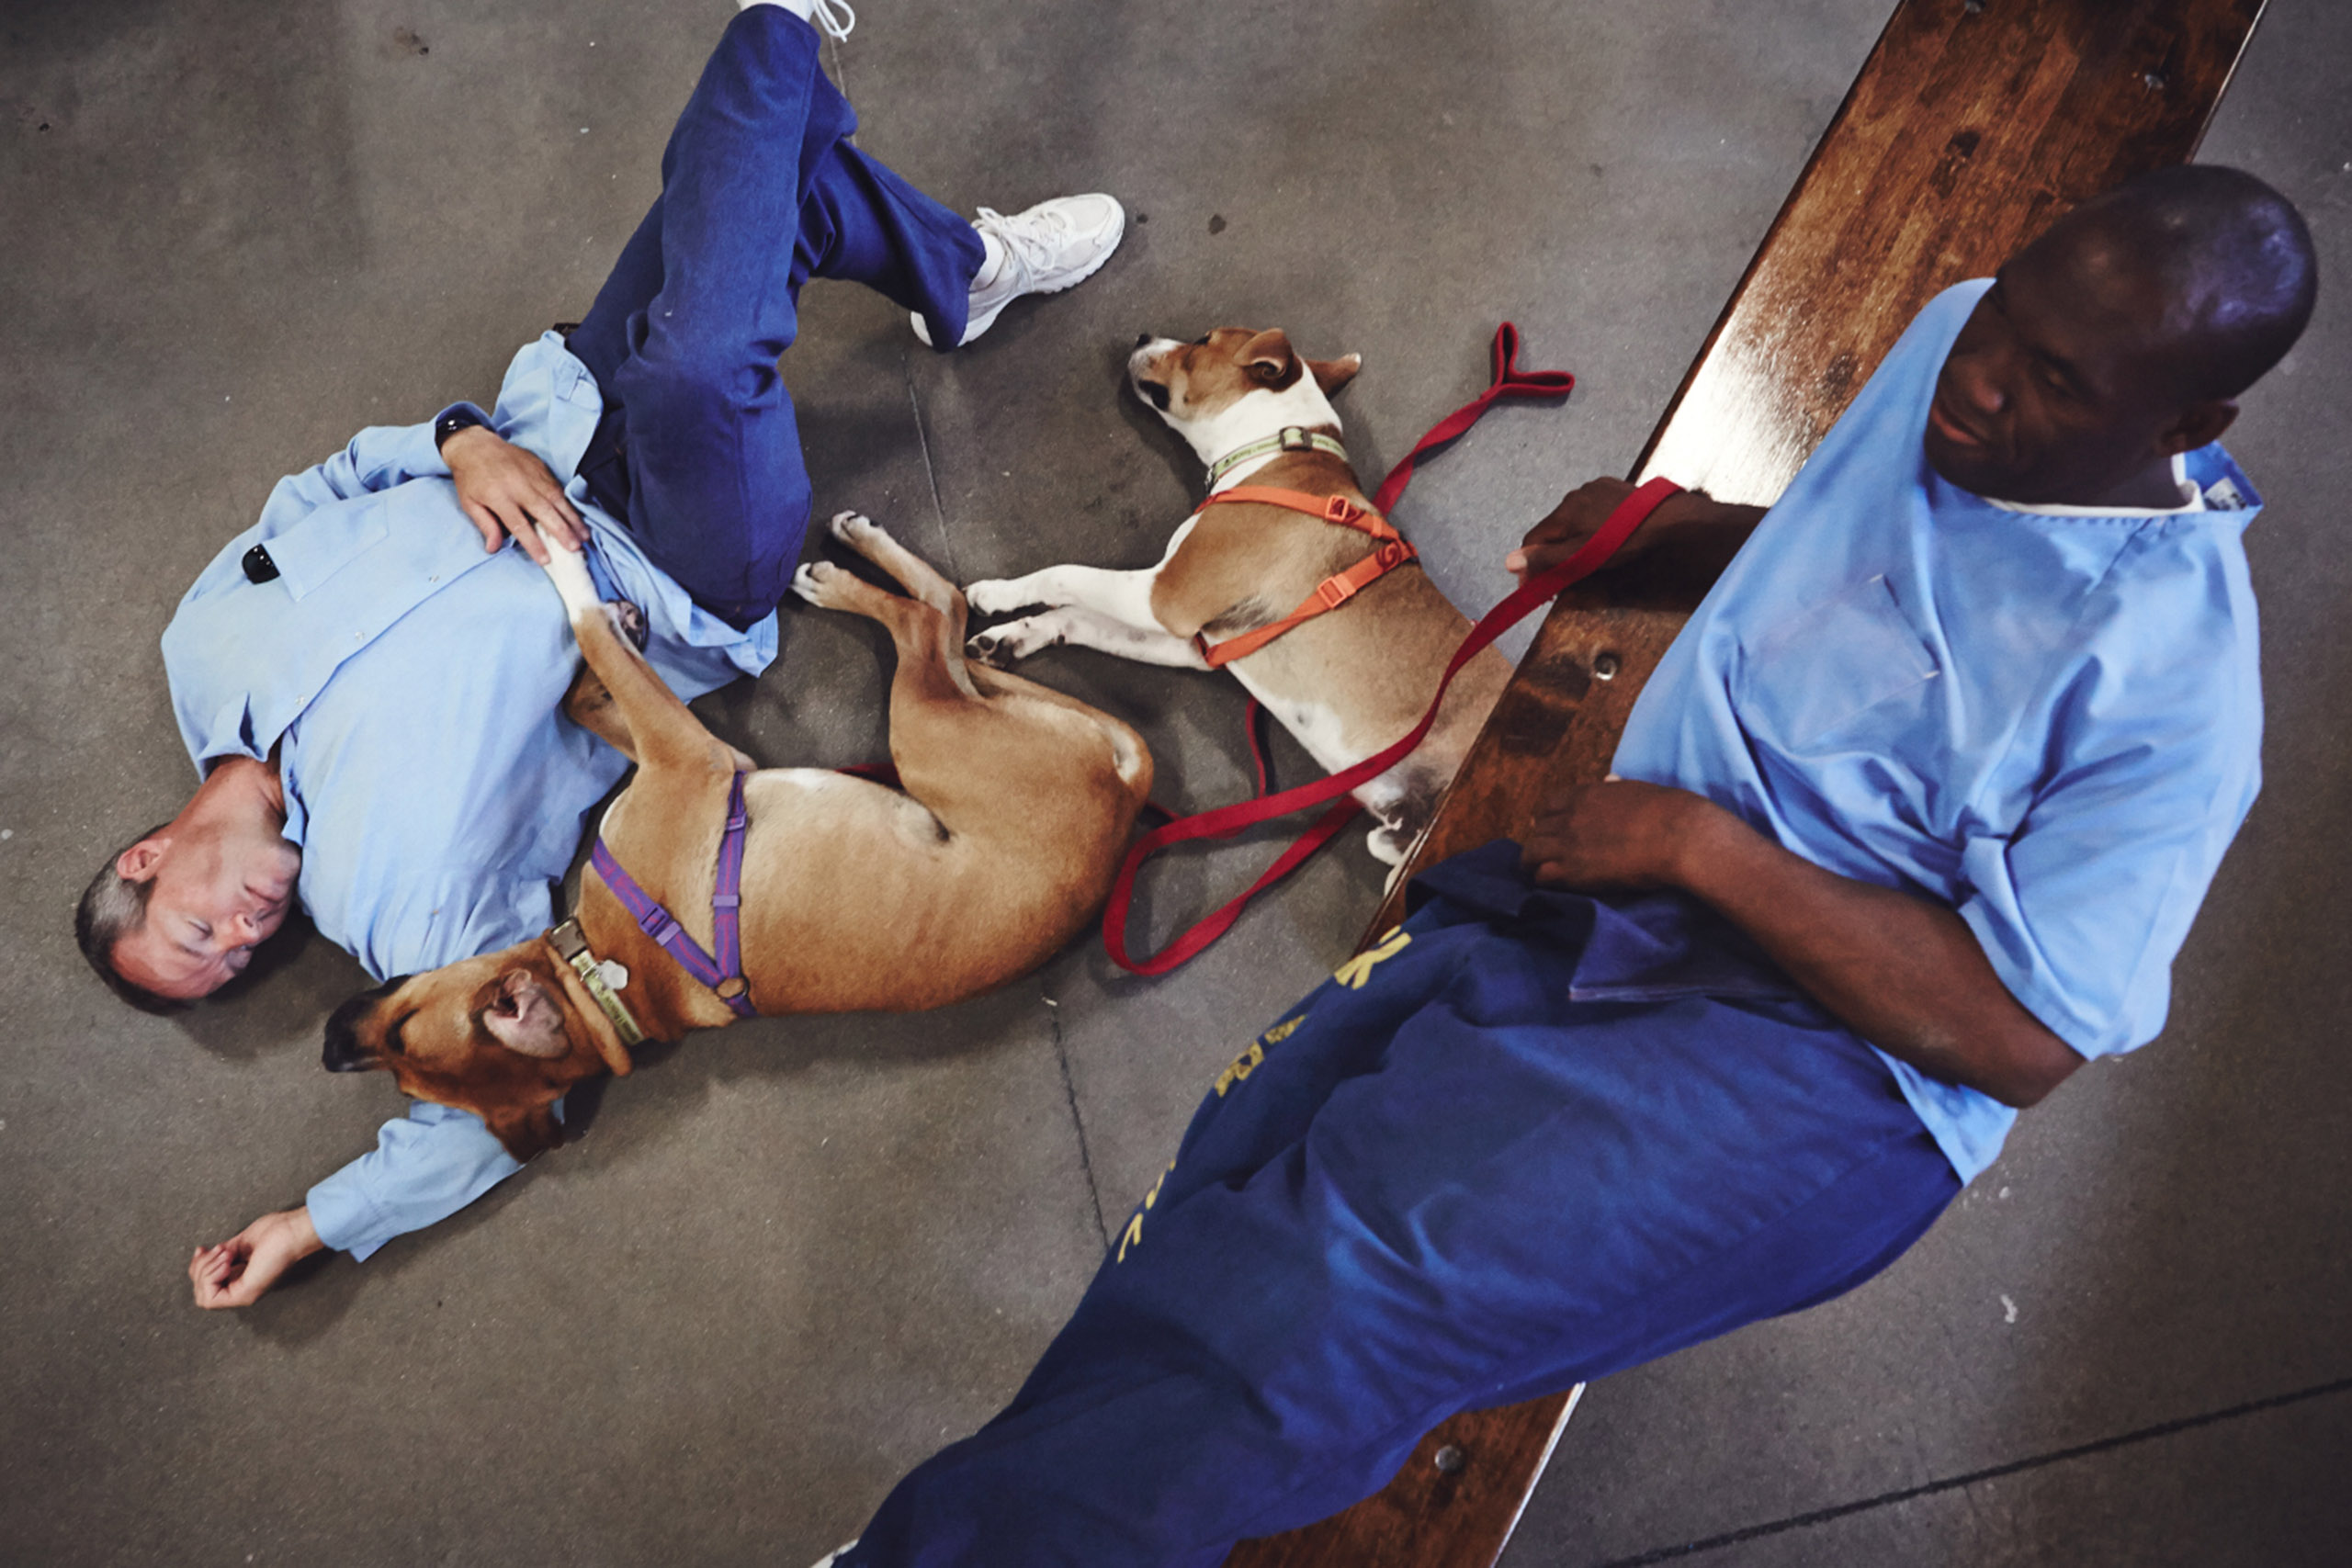 Inmates Jack and Marcus relaxing with dogs in the late afternoon inside cell block A5.